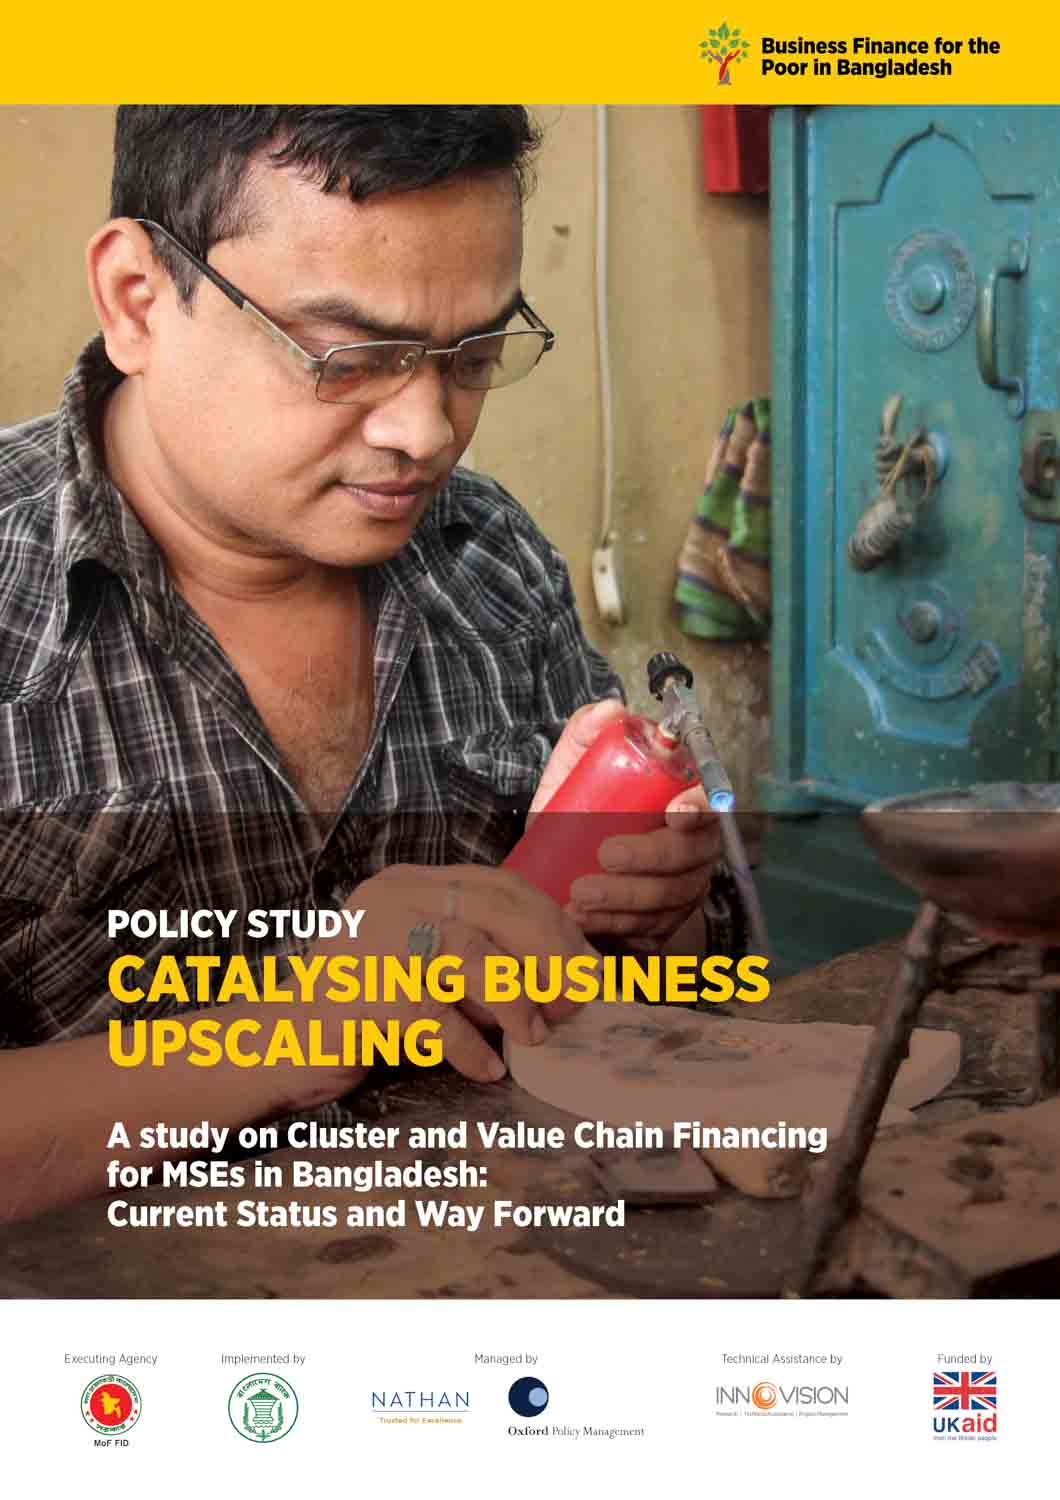 BFP-B policy study cluster and value chain financing